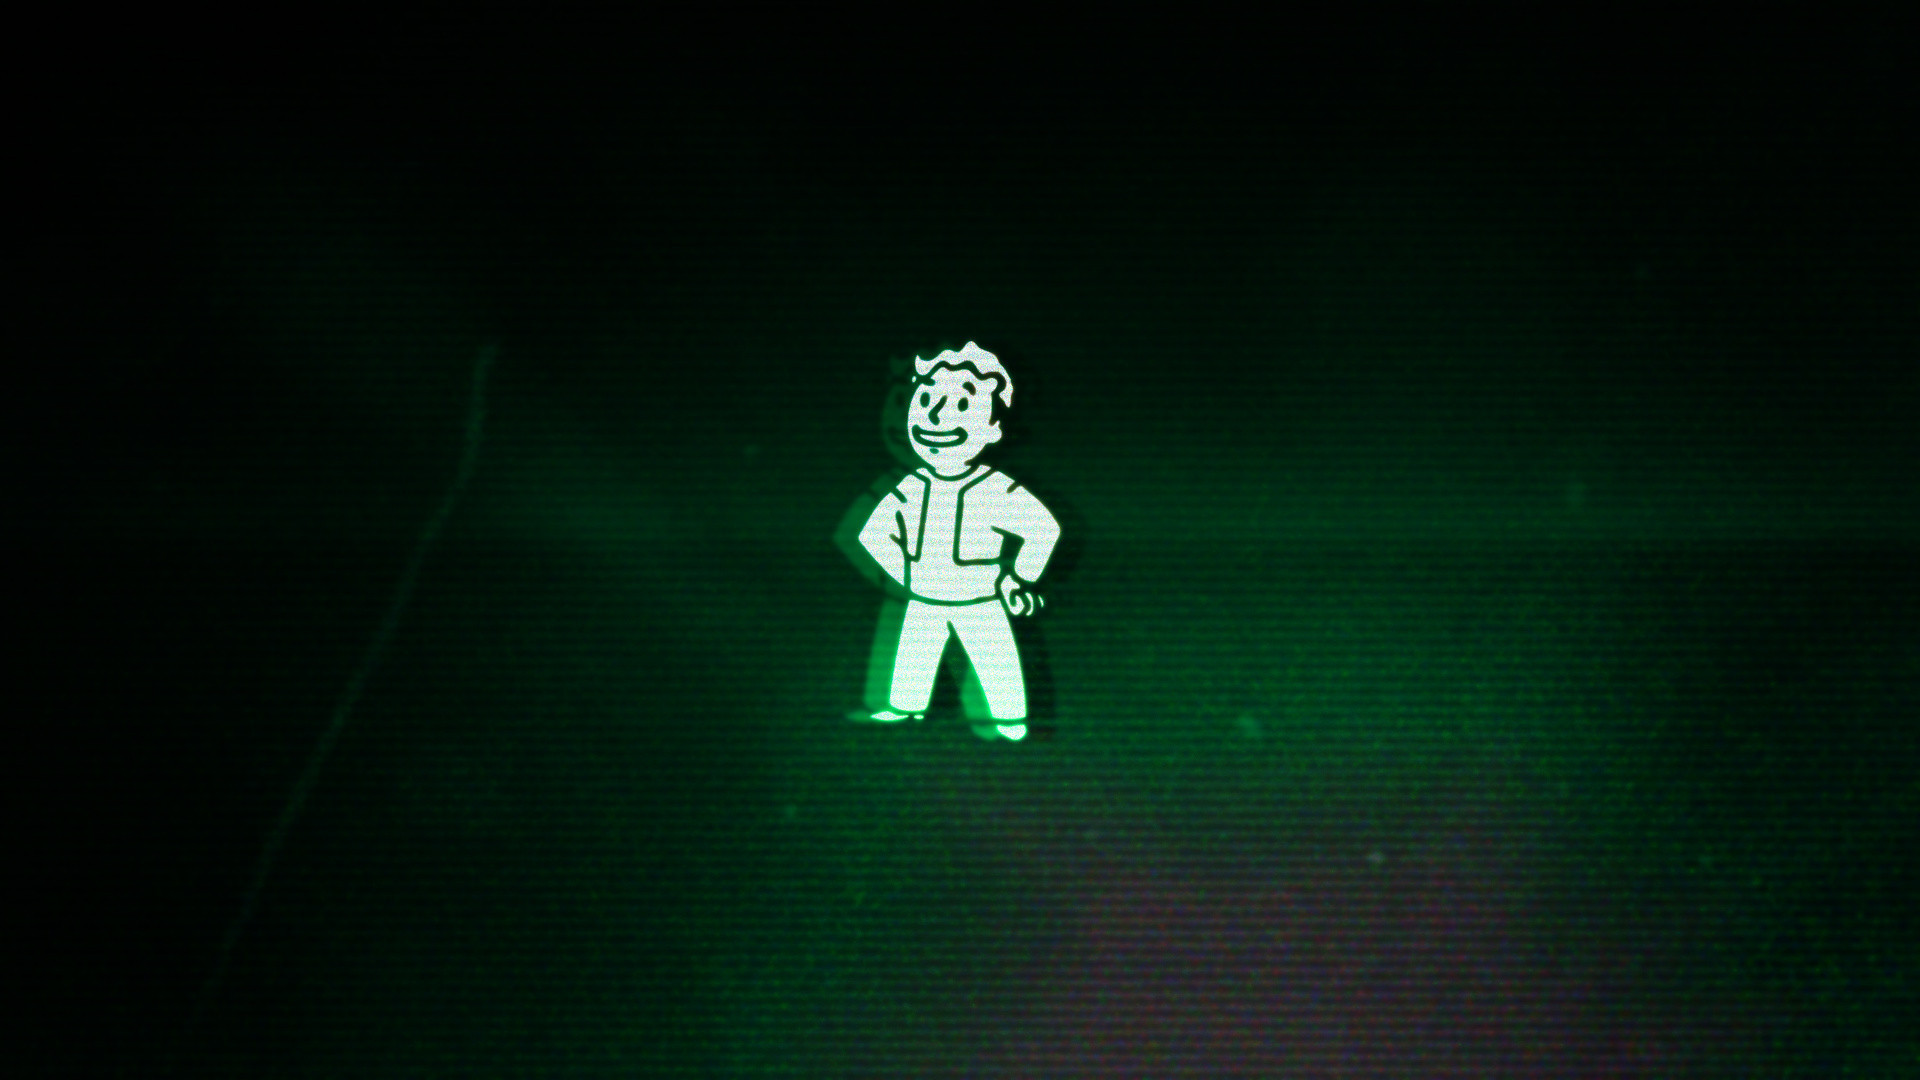 fallout pip boy background – Pesquisa Google